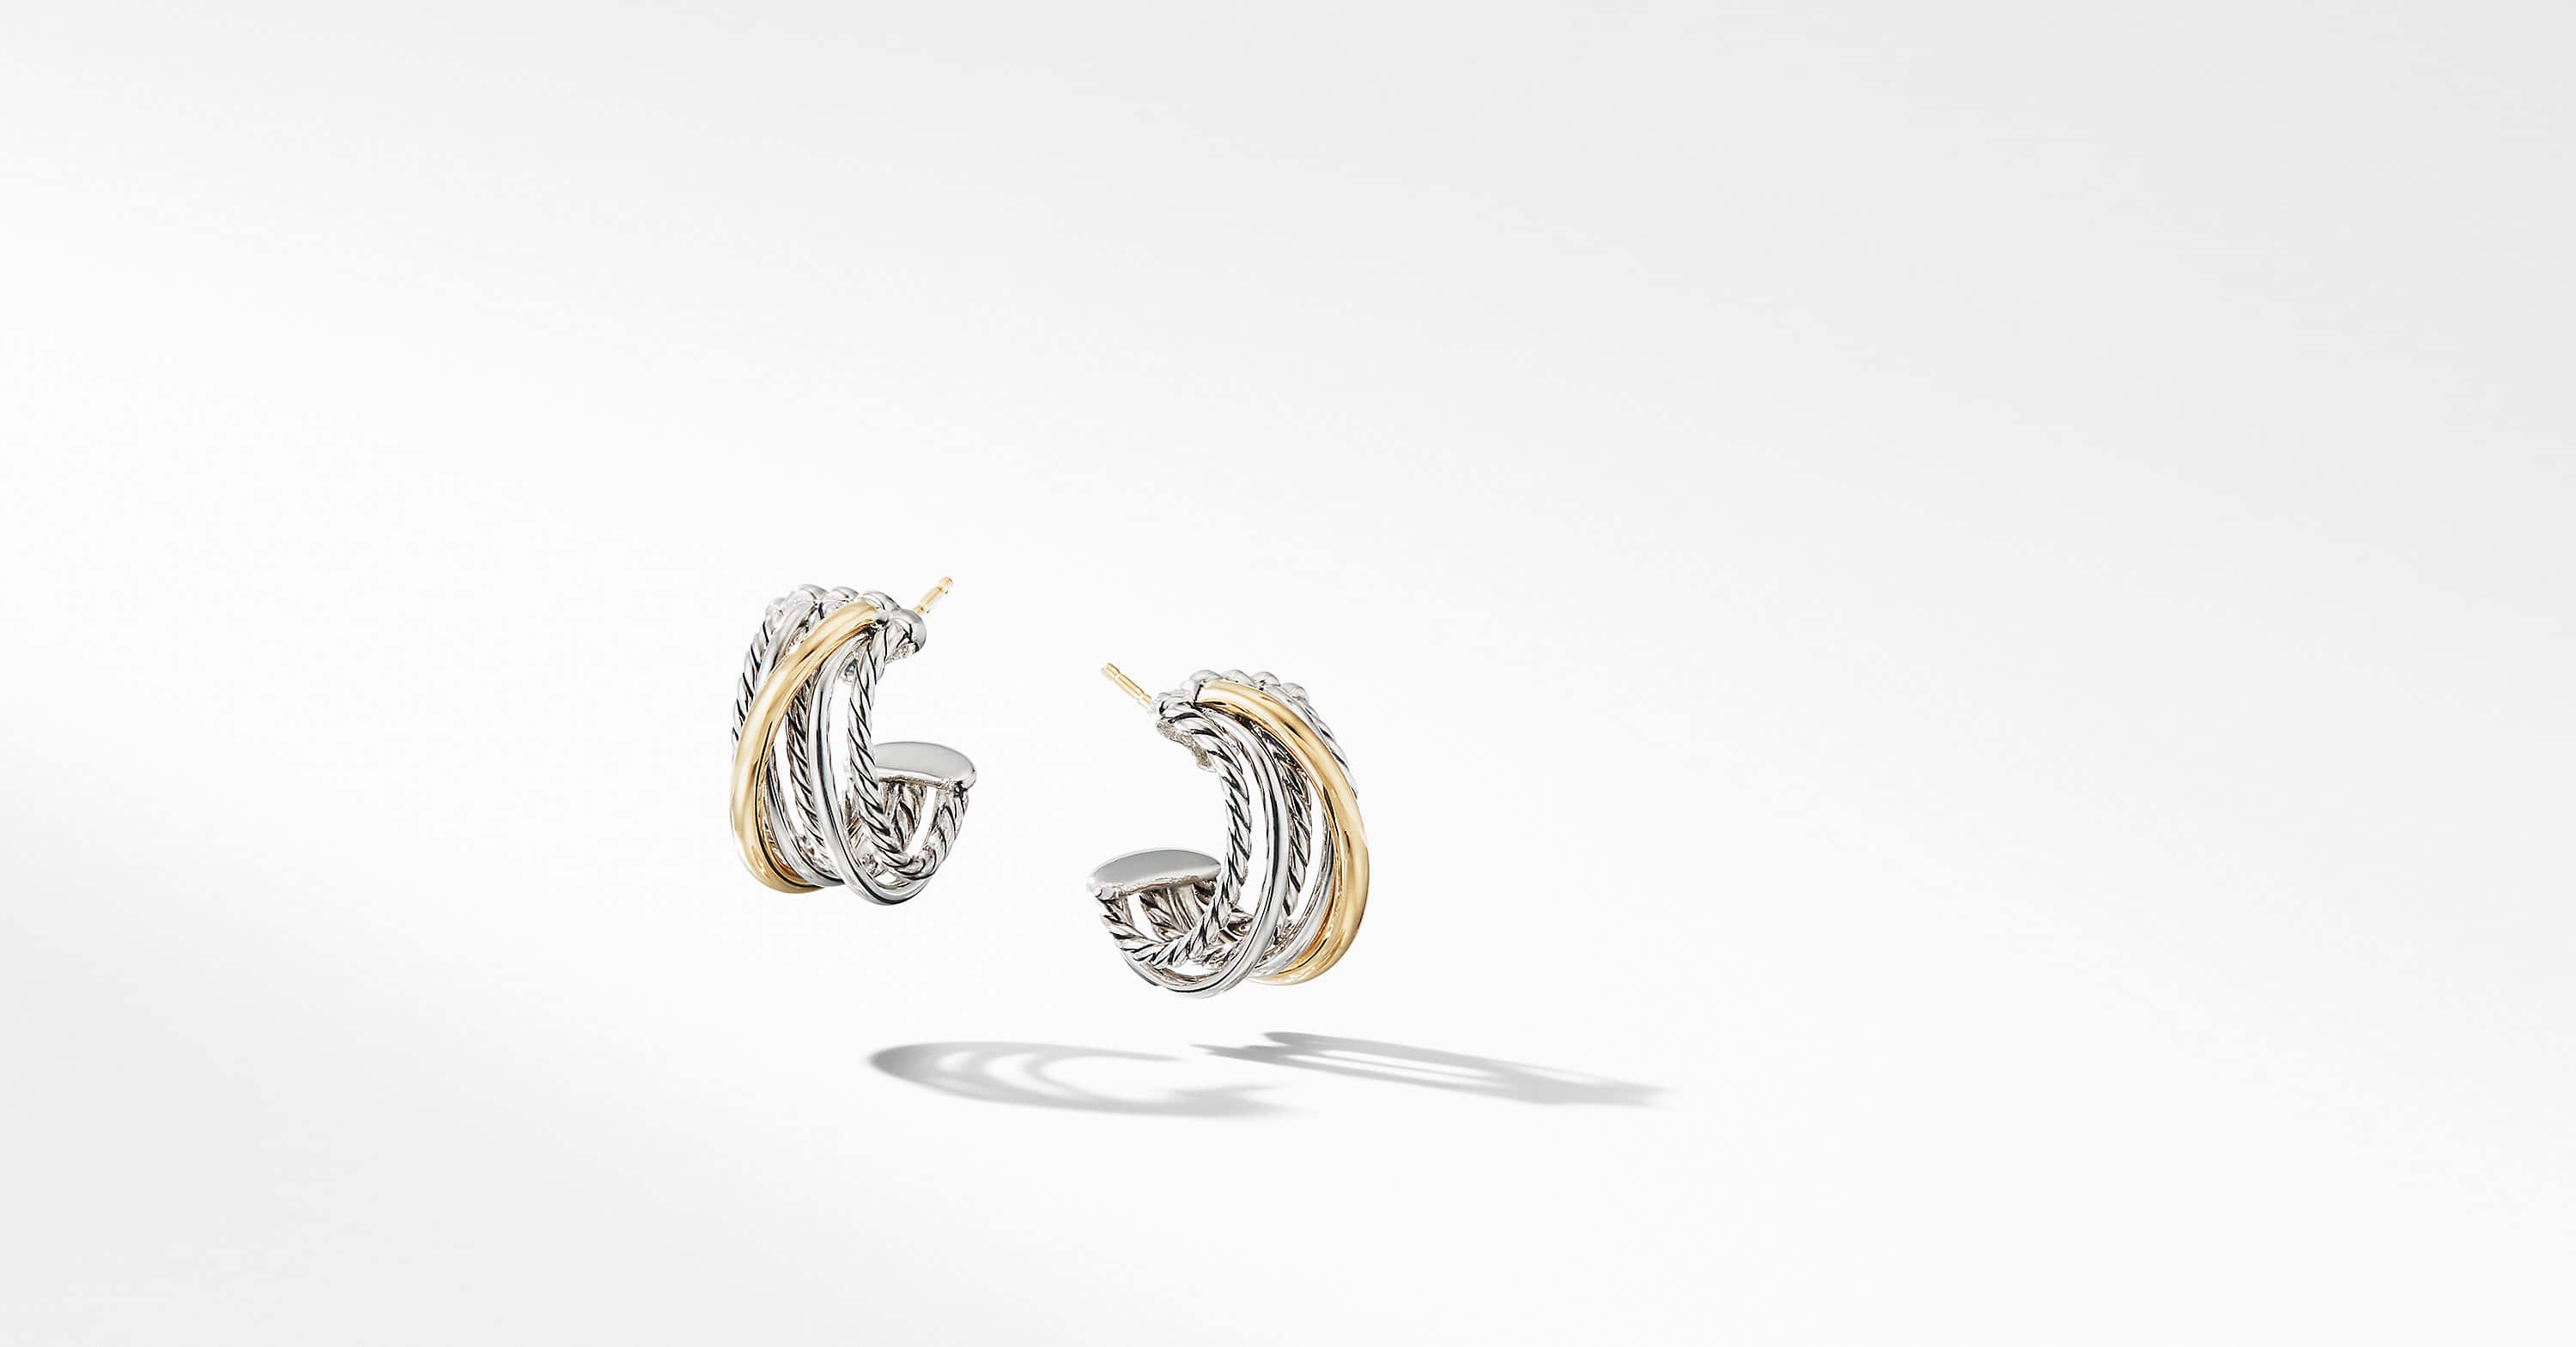 The Crossover Collection Huggie Hoop Earrings with 18K Yellow Gold